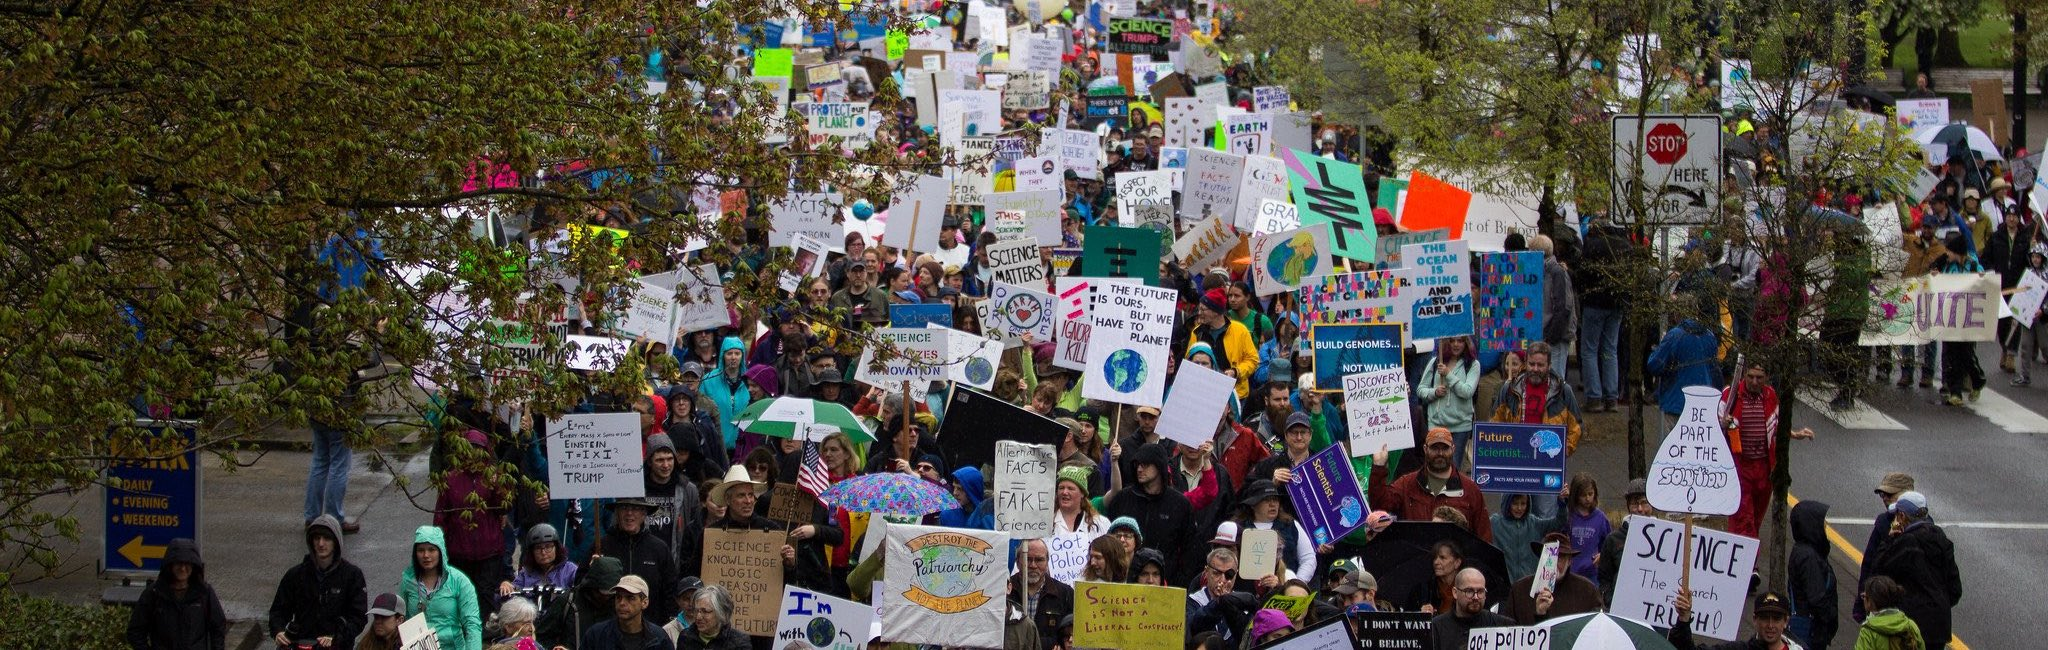 What Made Lakhs of Scientists March for Science Across the Globe?